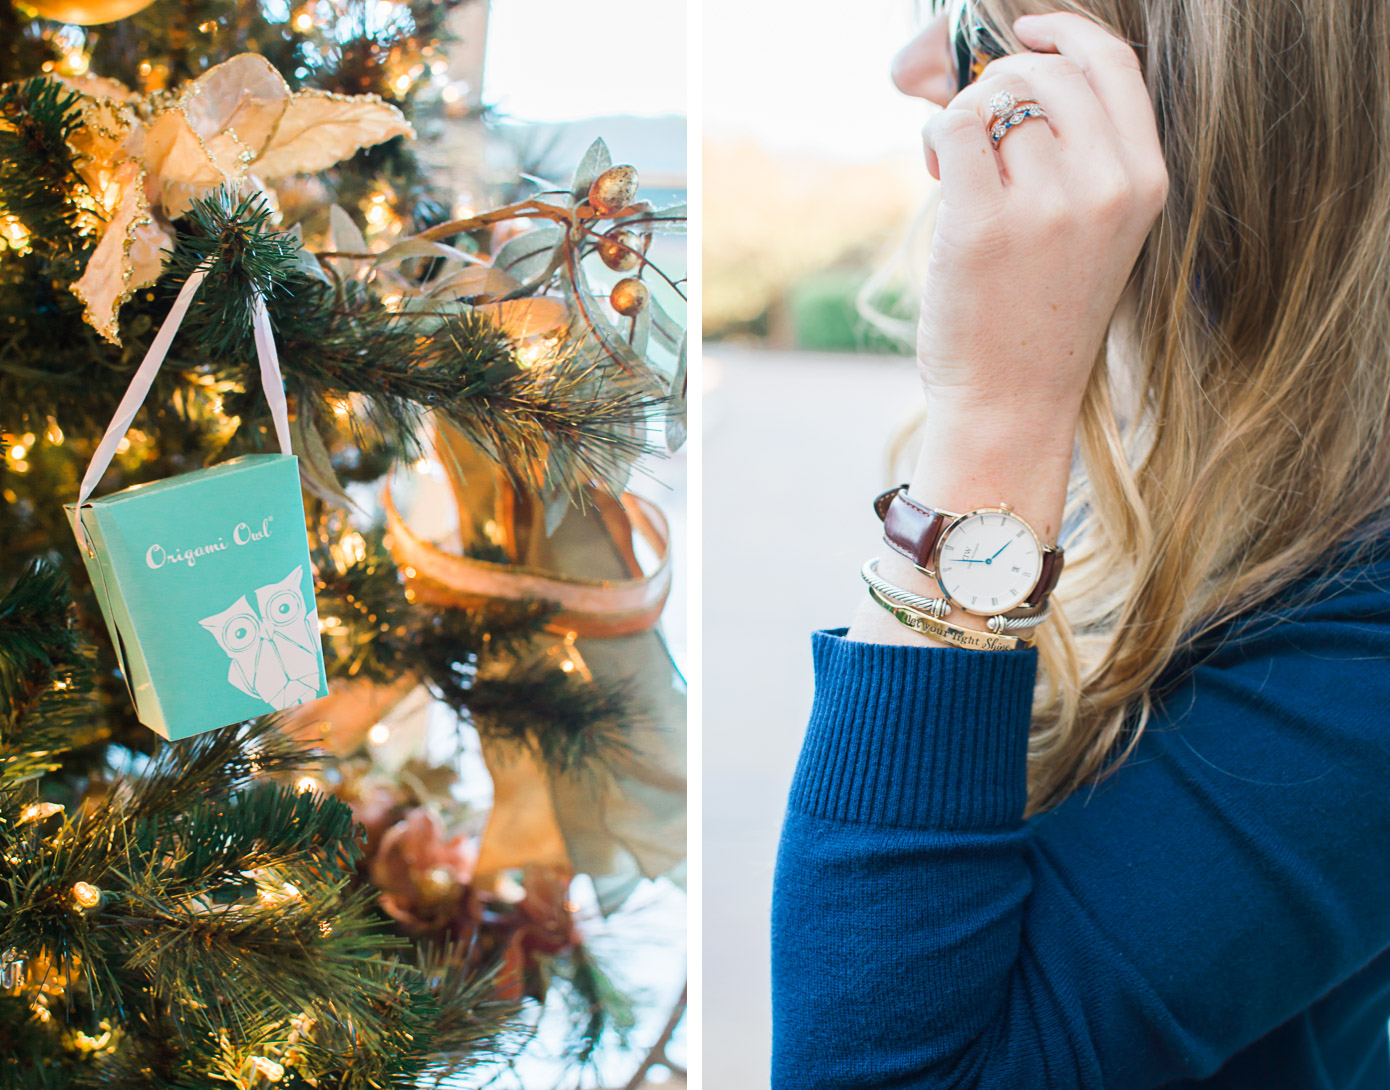 Origami Owl | Personalized Christmas Gifts | Louella Reese Life & Style Blog